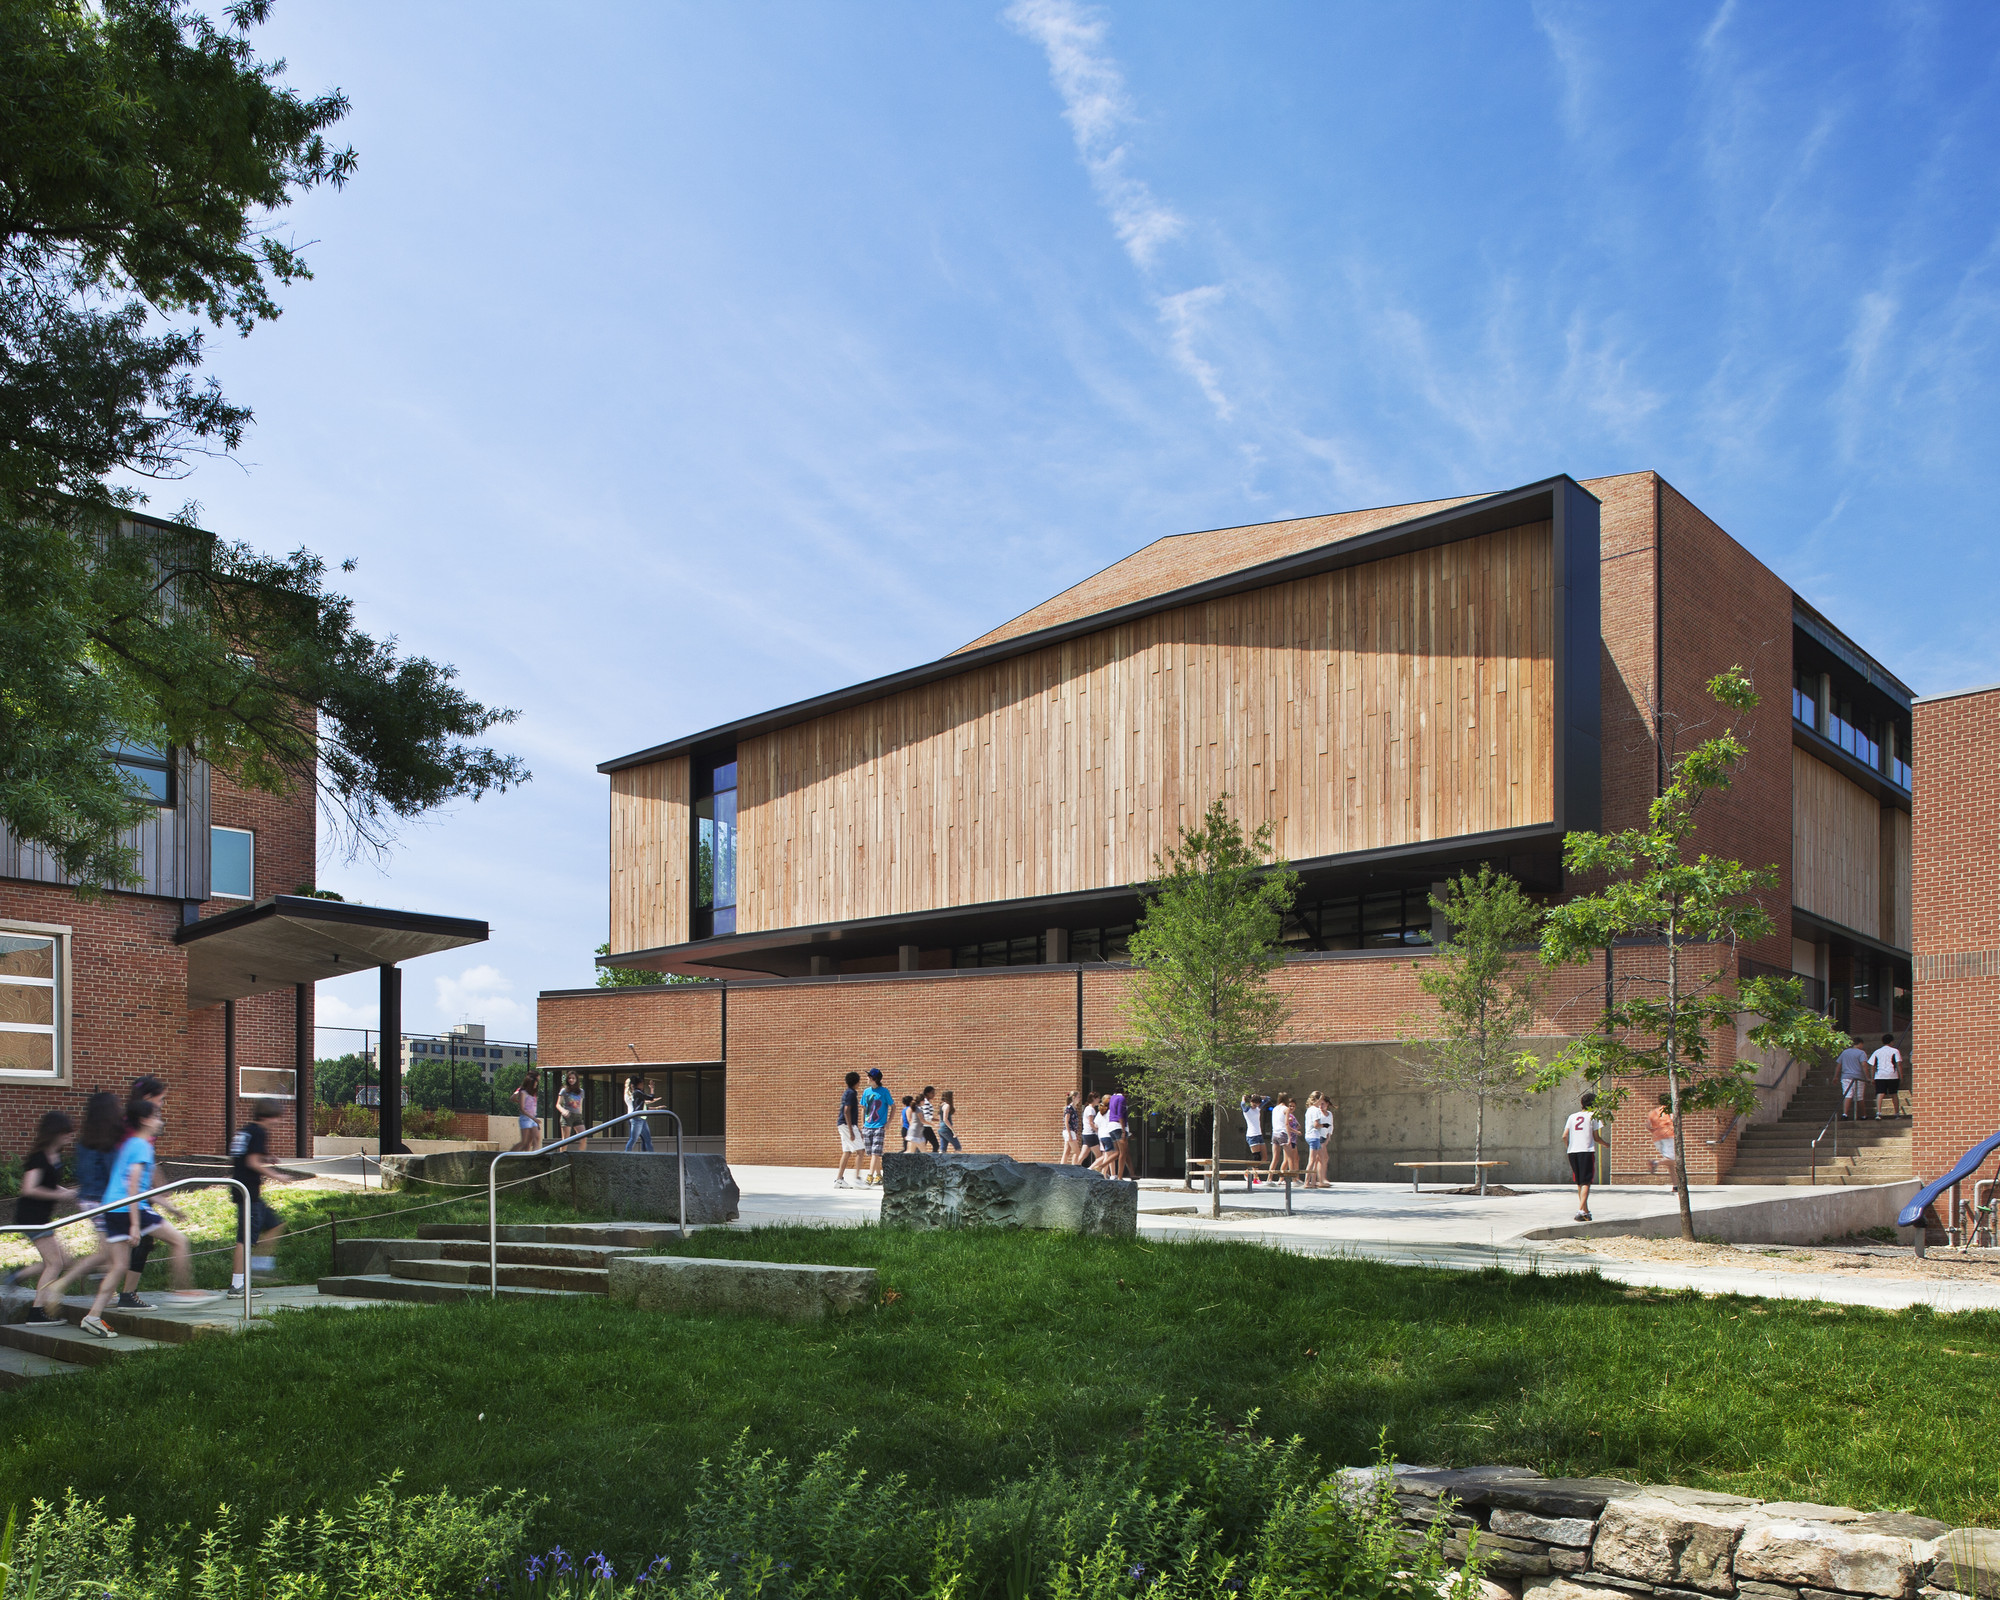 Quaker Meeting House and Arts Center, Sidwell Friends School / KieranTimberlake © Michael Moran/OTTO